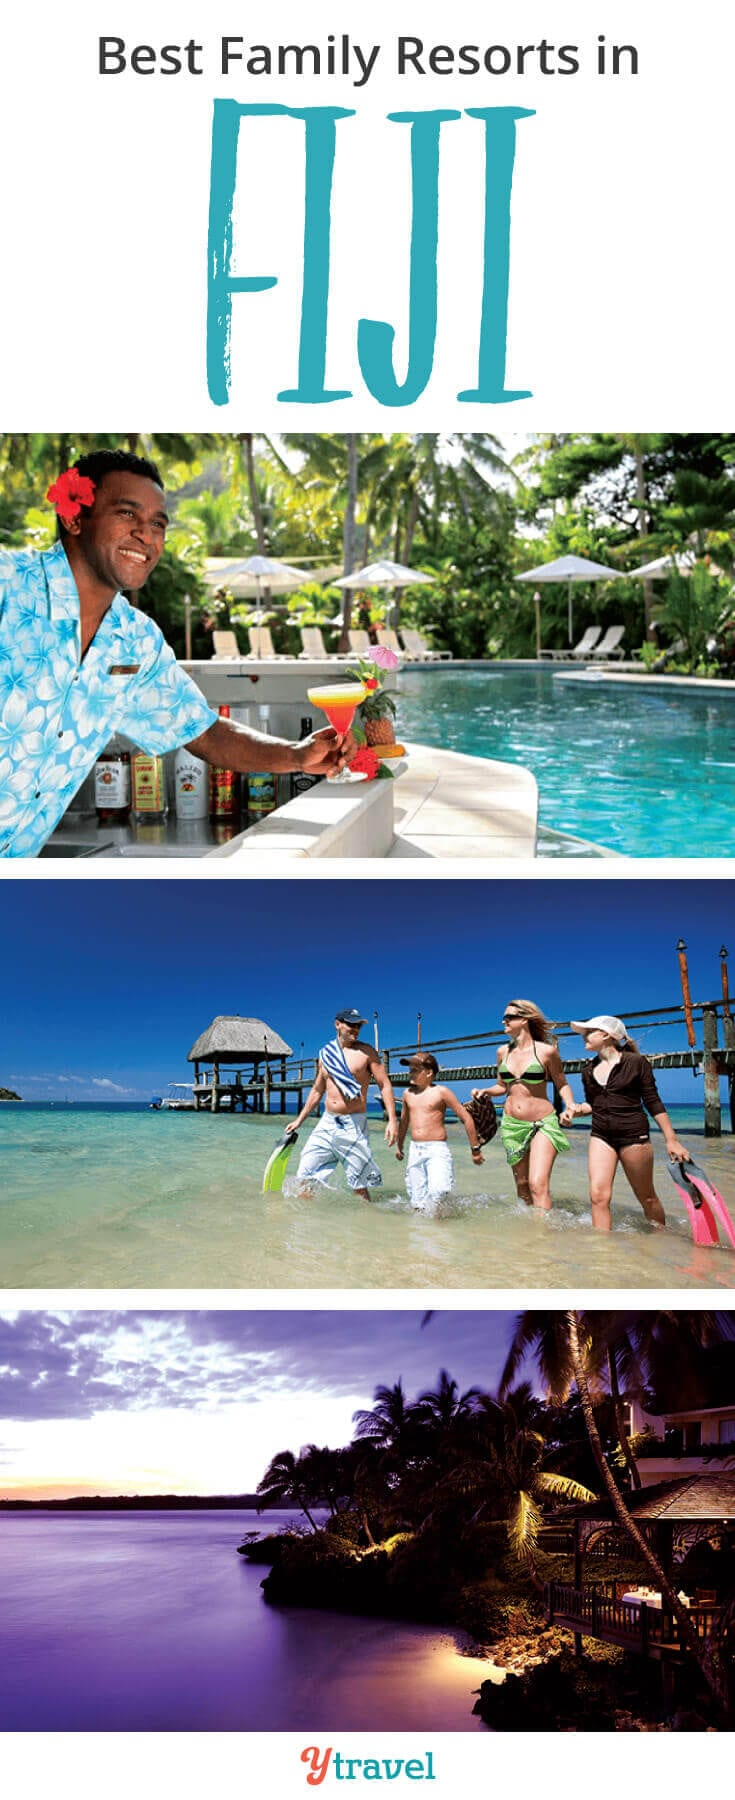 5 best family resorts in Fiji. Planning a Fiji family holiday? Need tips on where to stay in Fiji? Here are the 5 Best Family Resorts in Fiji for your family holiday to the Fijian Islands